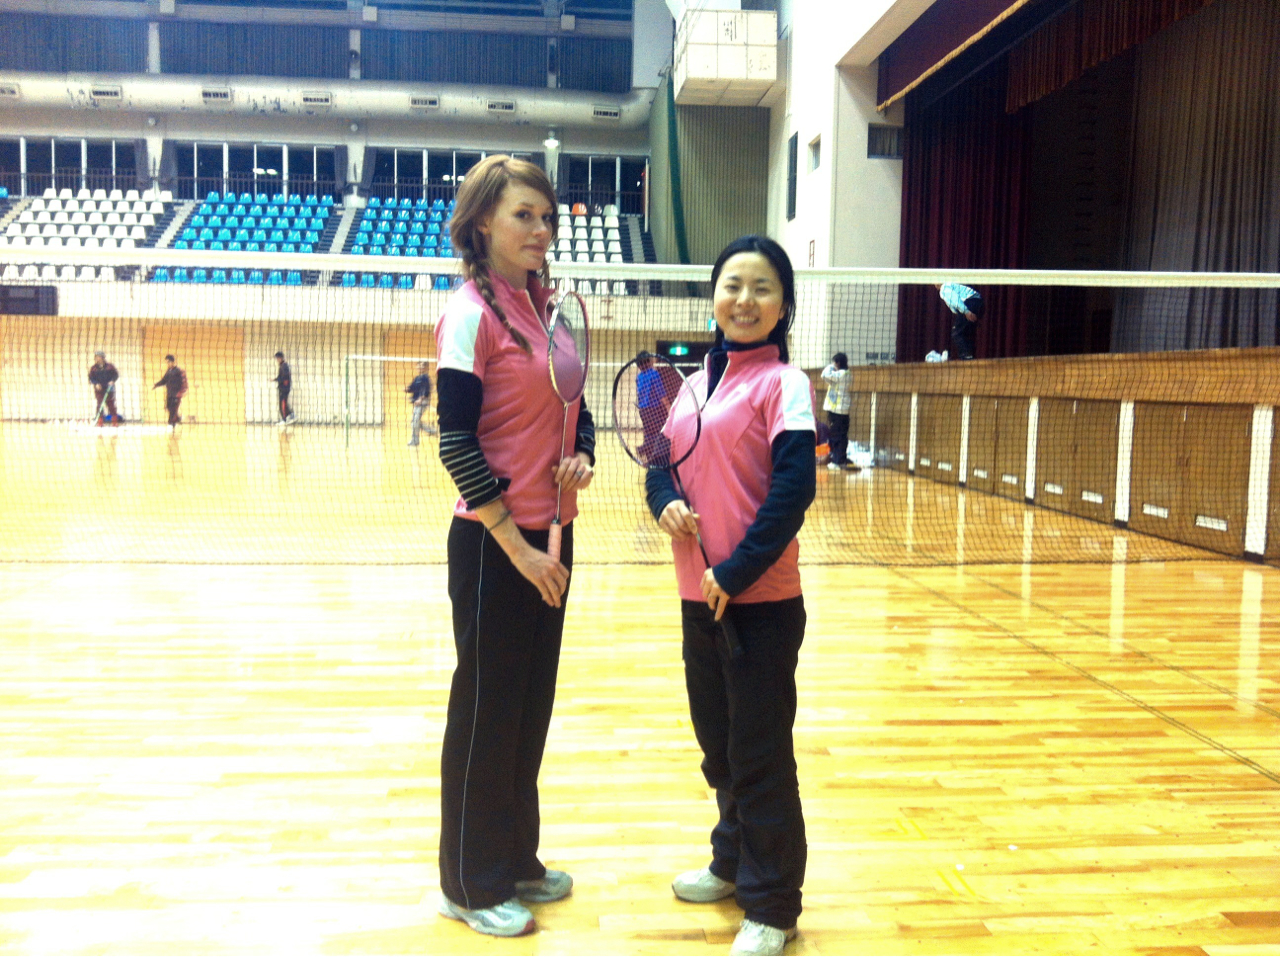 Our new hobby has grown quite serious. Badminton. It's business time.